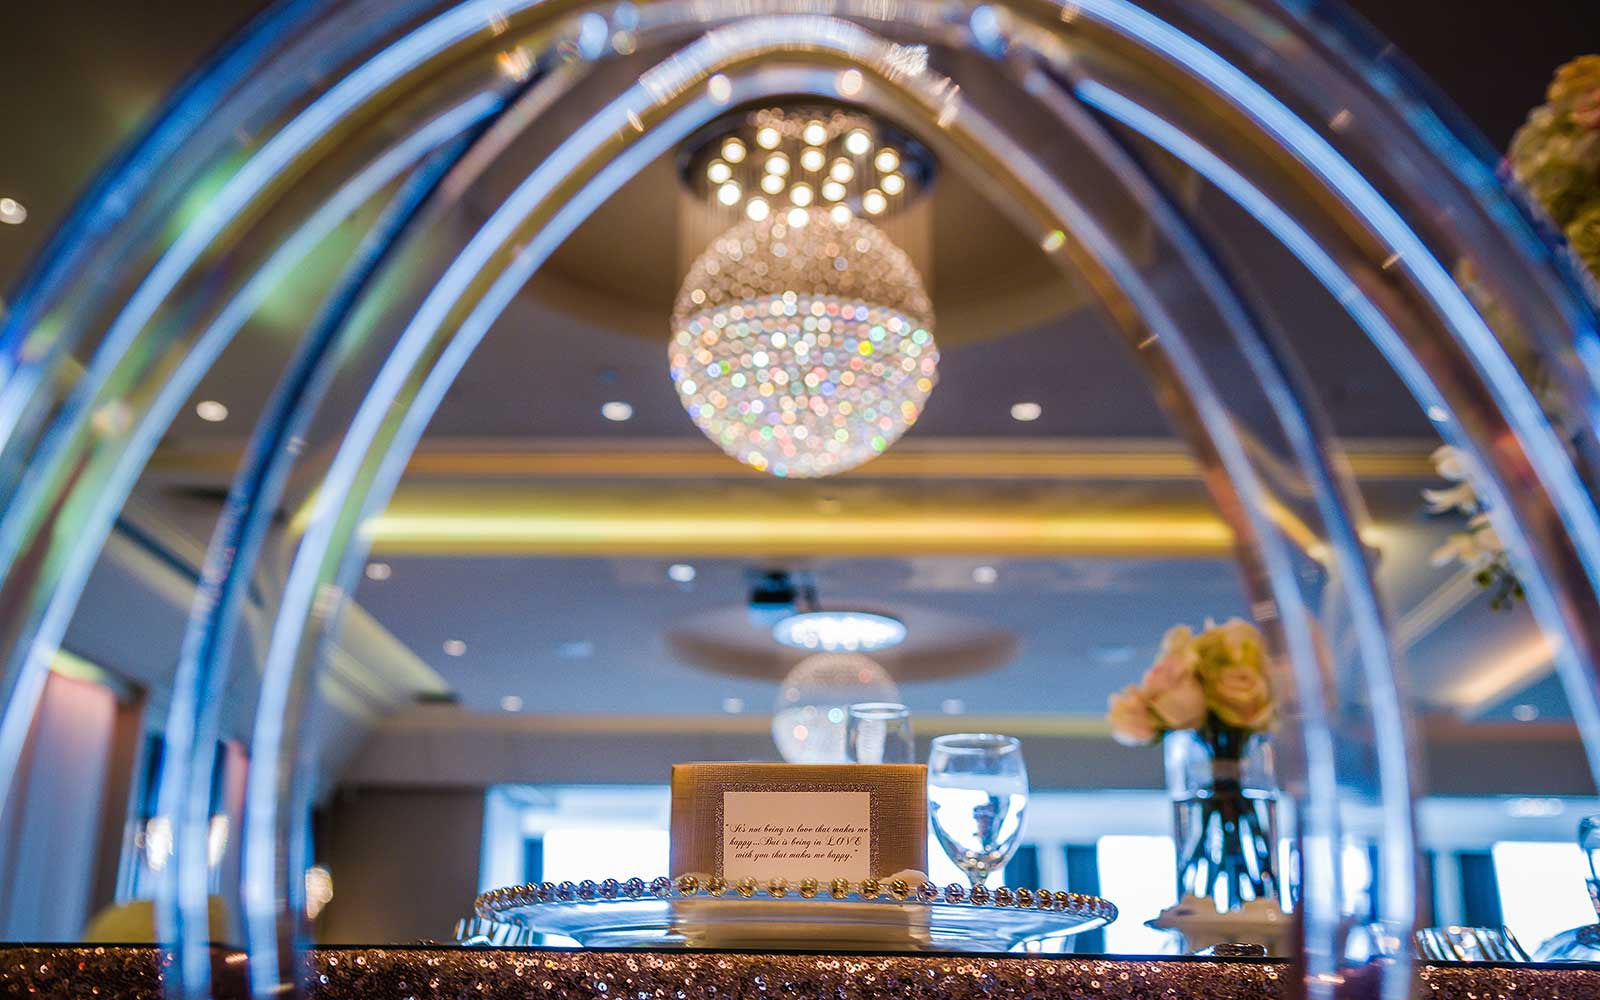 Le Crystal Reception Halls - Le Diamant